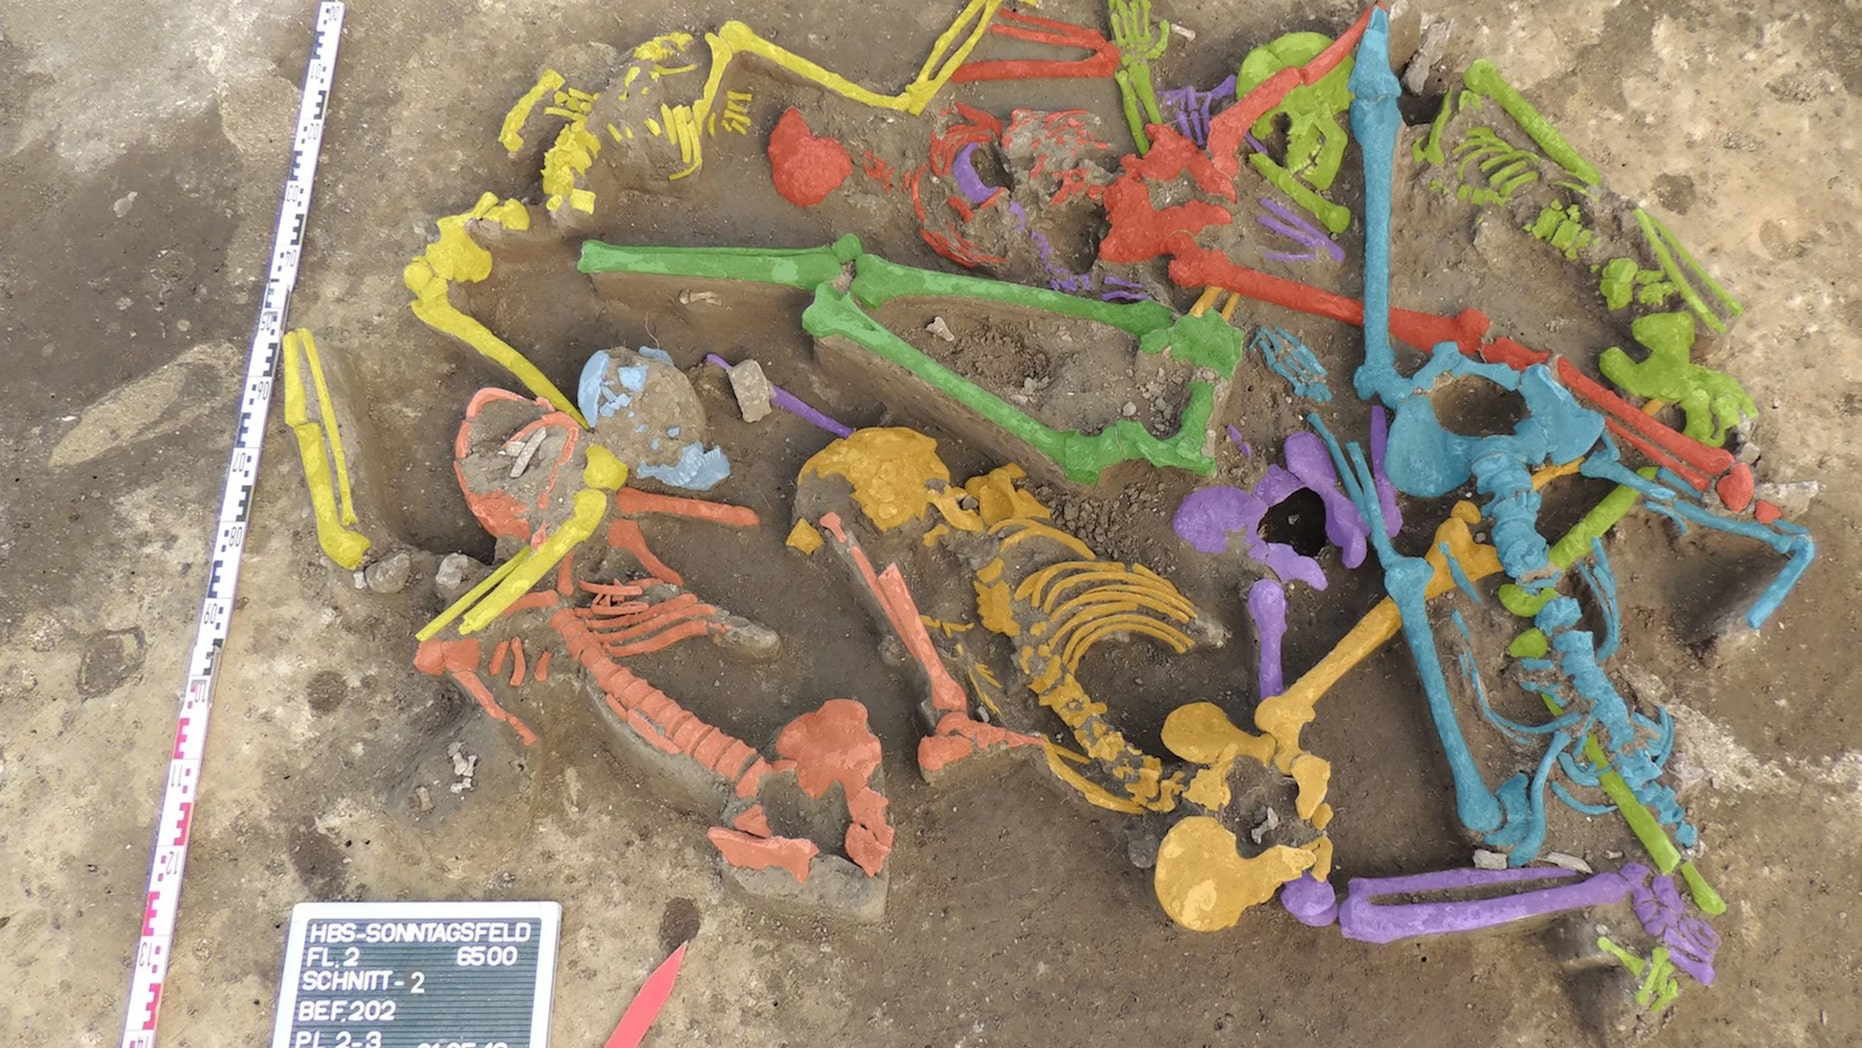 The excavation of the mass grave of Halberstadt revealed the remains of nine bodies, shown here in different colors. Credit: Copyright LDA Sachsen-Anhalt/Christian Meyer